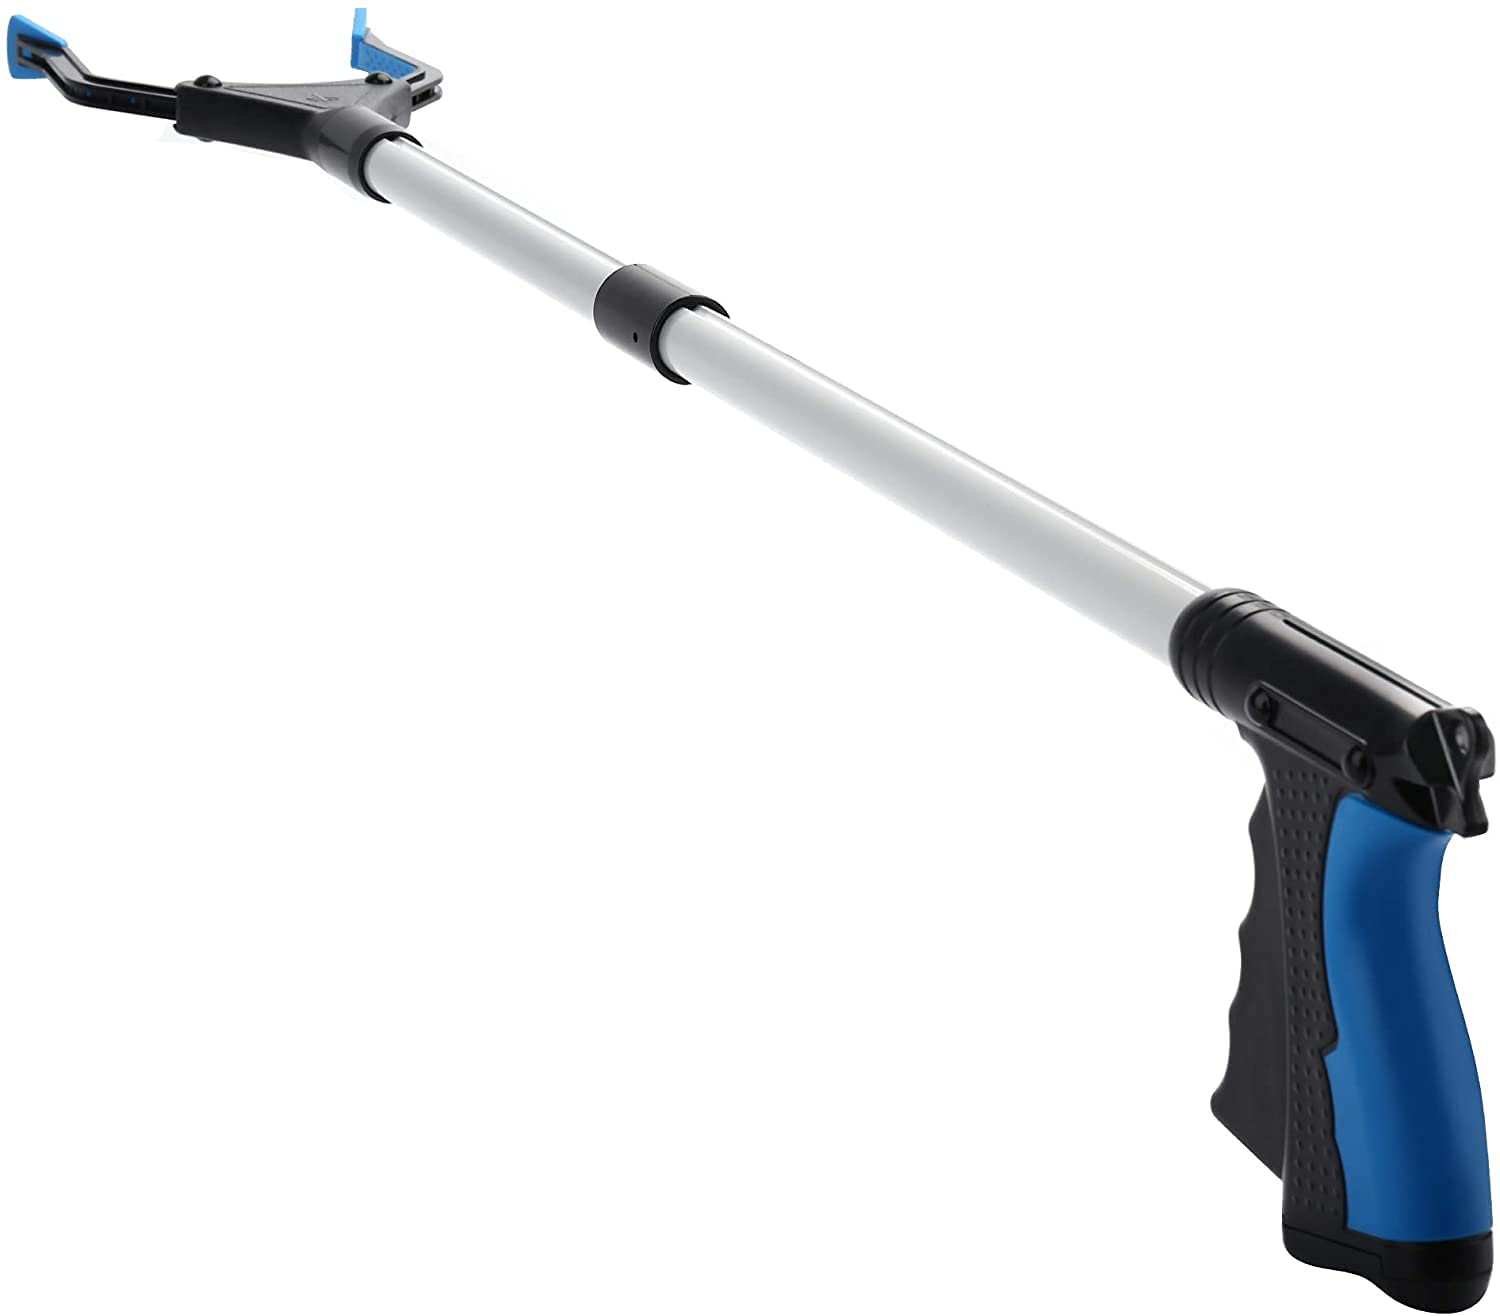 Movable Grabber Reacher Tool, Foldable Home Pick Up Device for Elderly Younger, Lightweight Long Handy Trash Claw Grabber, Mobility Aid Reaching Assist Tool, Trash Picker Grabber Tool (Blue): Industrial & Scientific